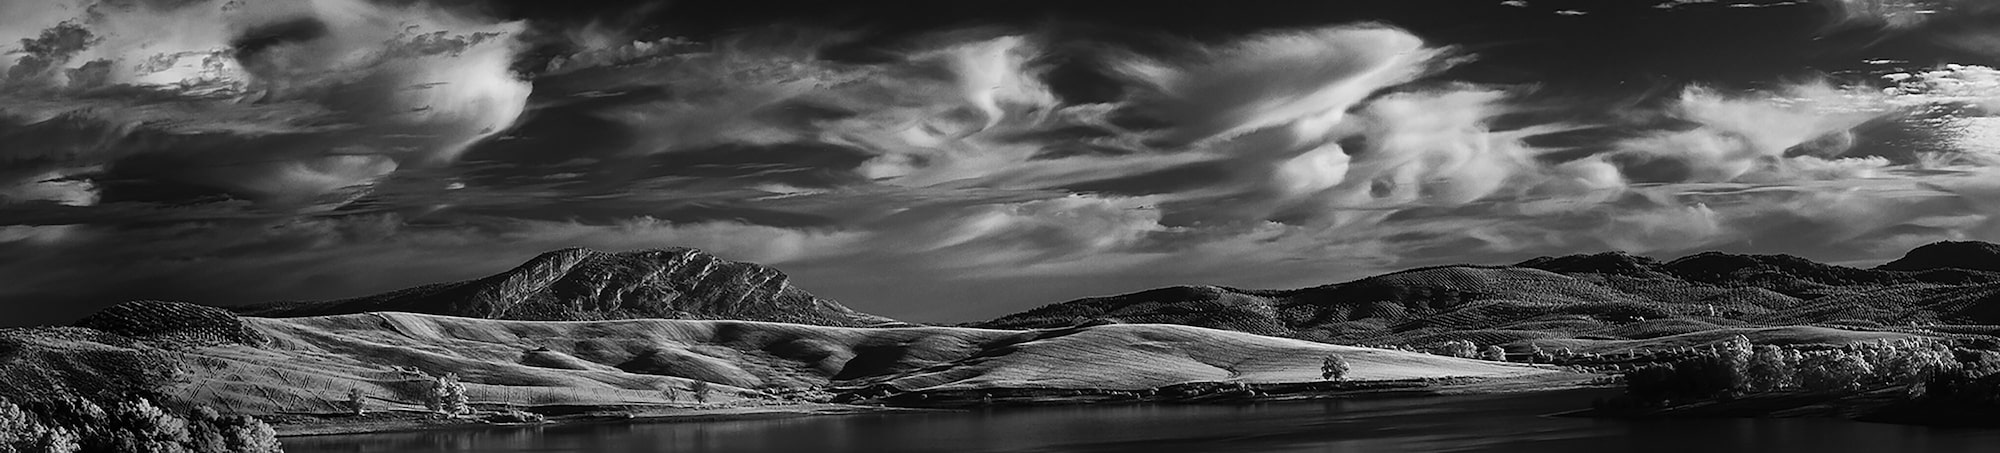 dilian markov sony nex 6 black and white mountain landscape in andalucia spain